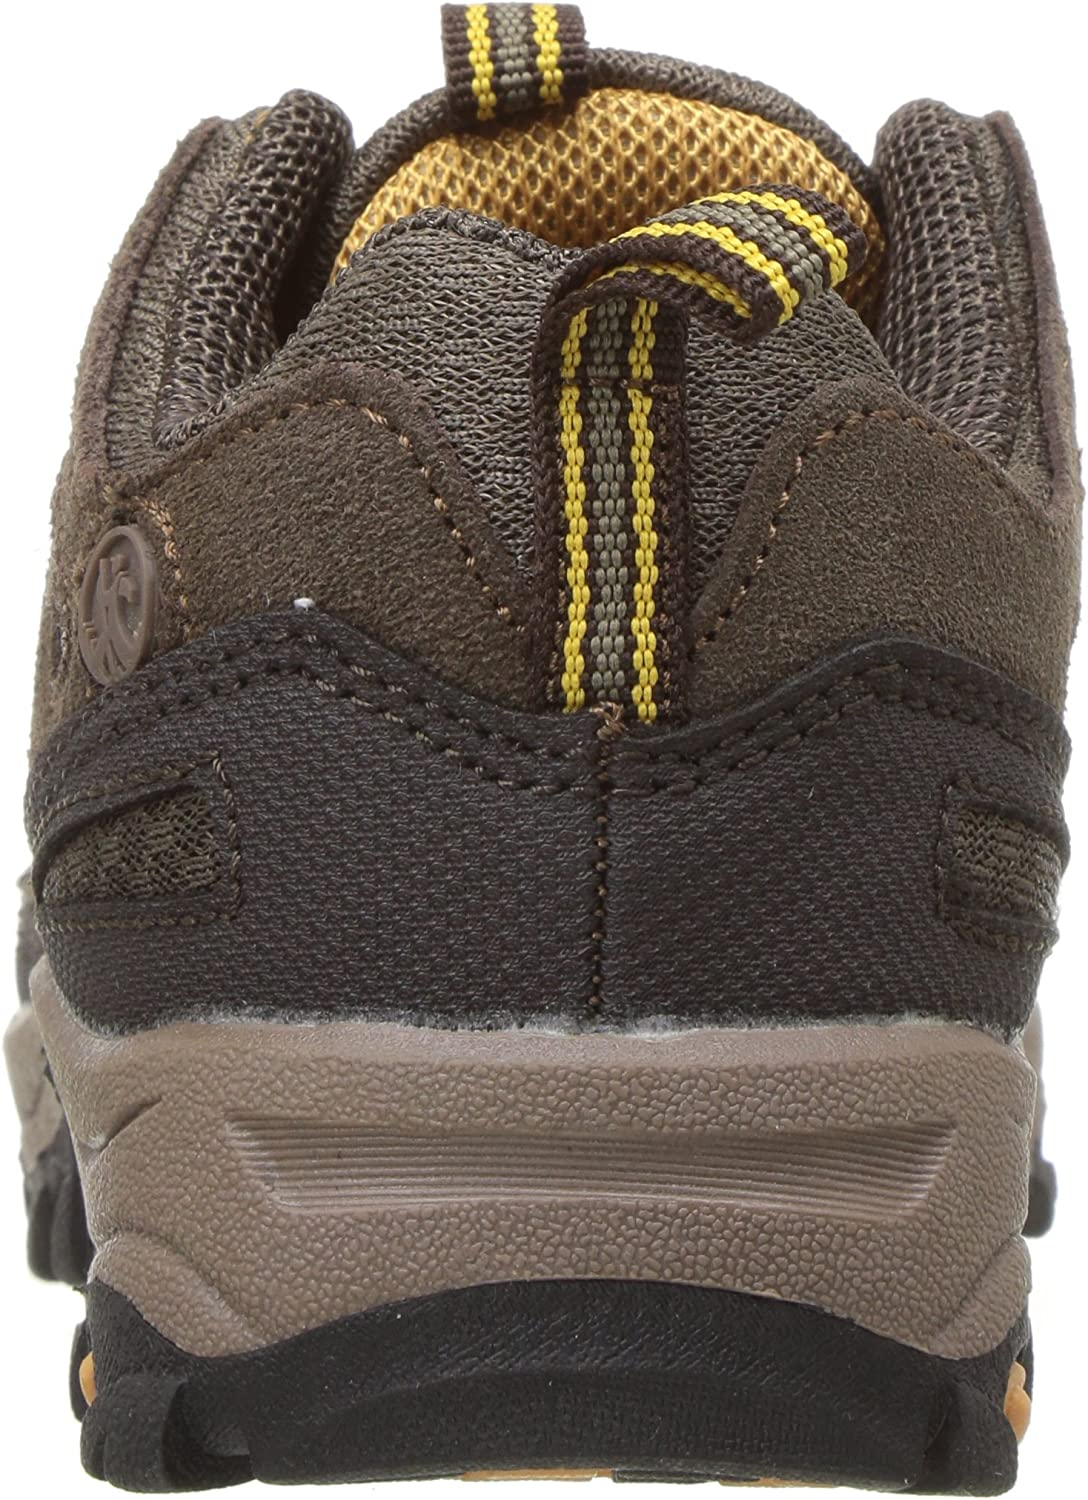 Northside Kids Cheyenne JR Hiking Shoe